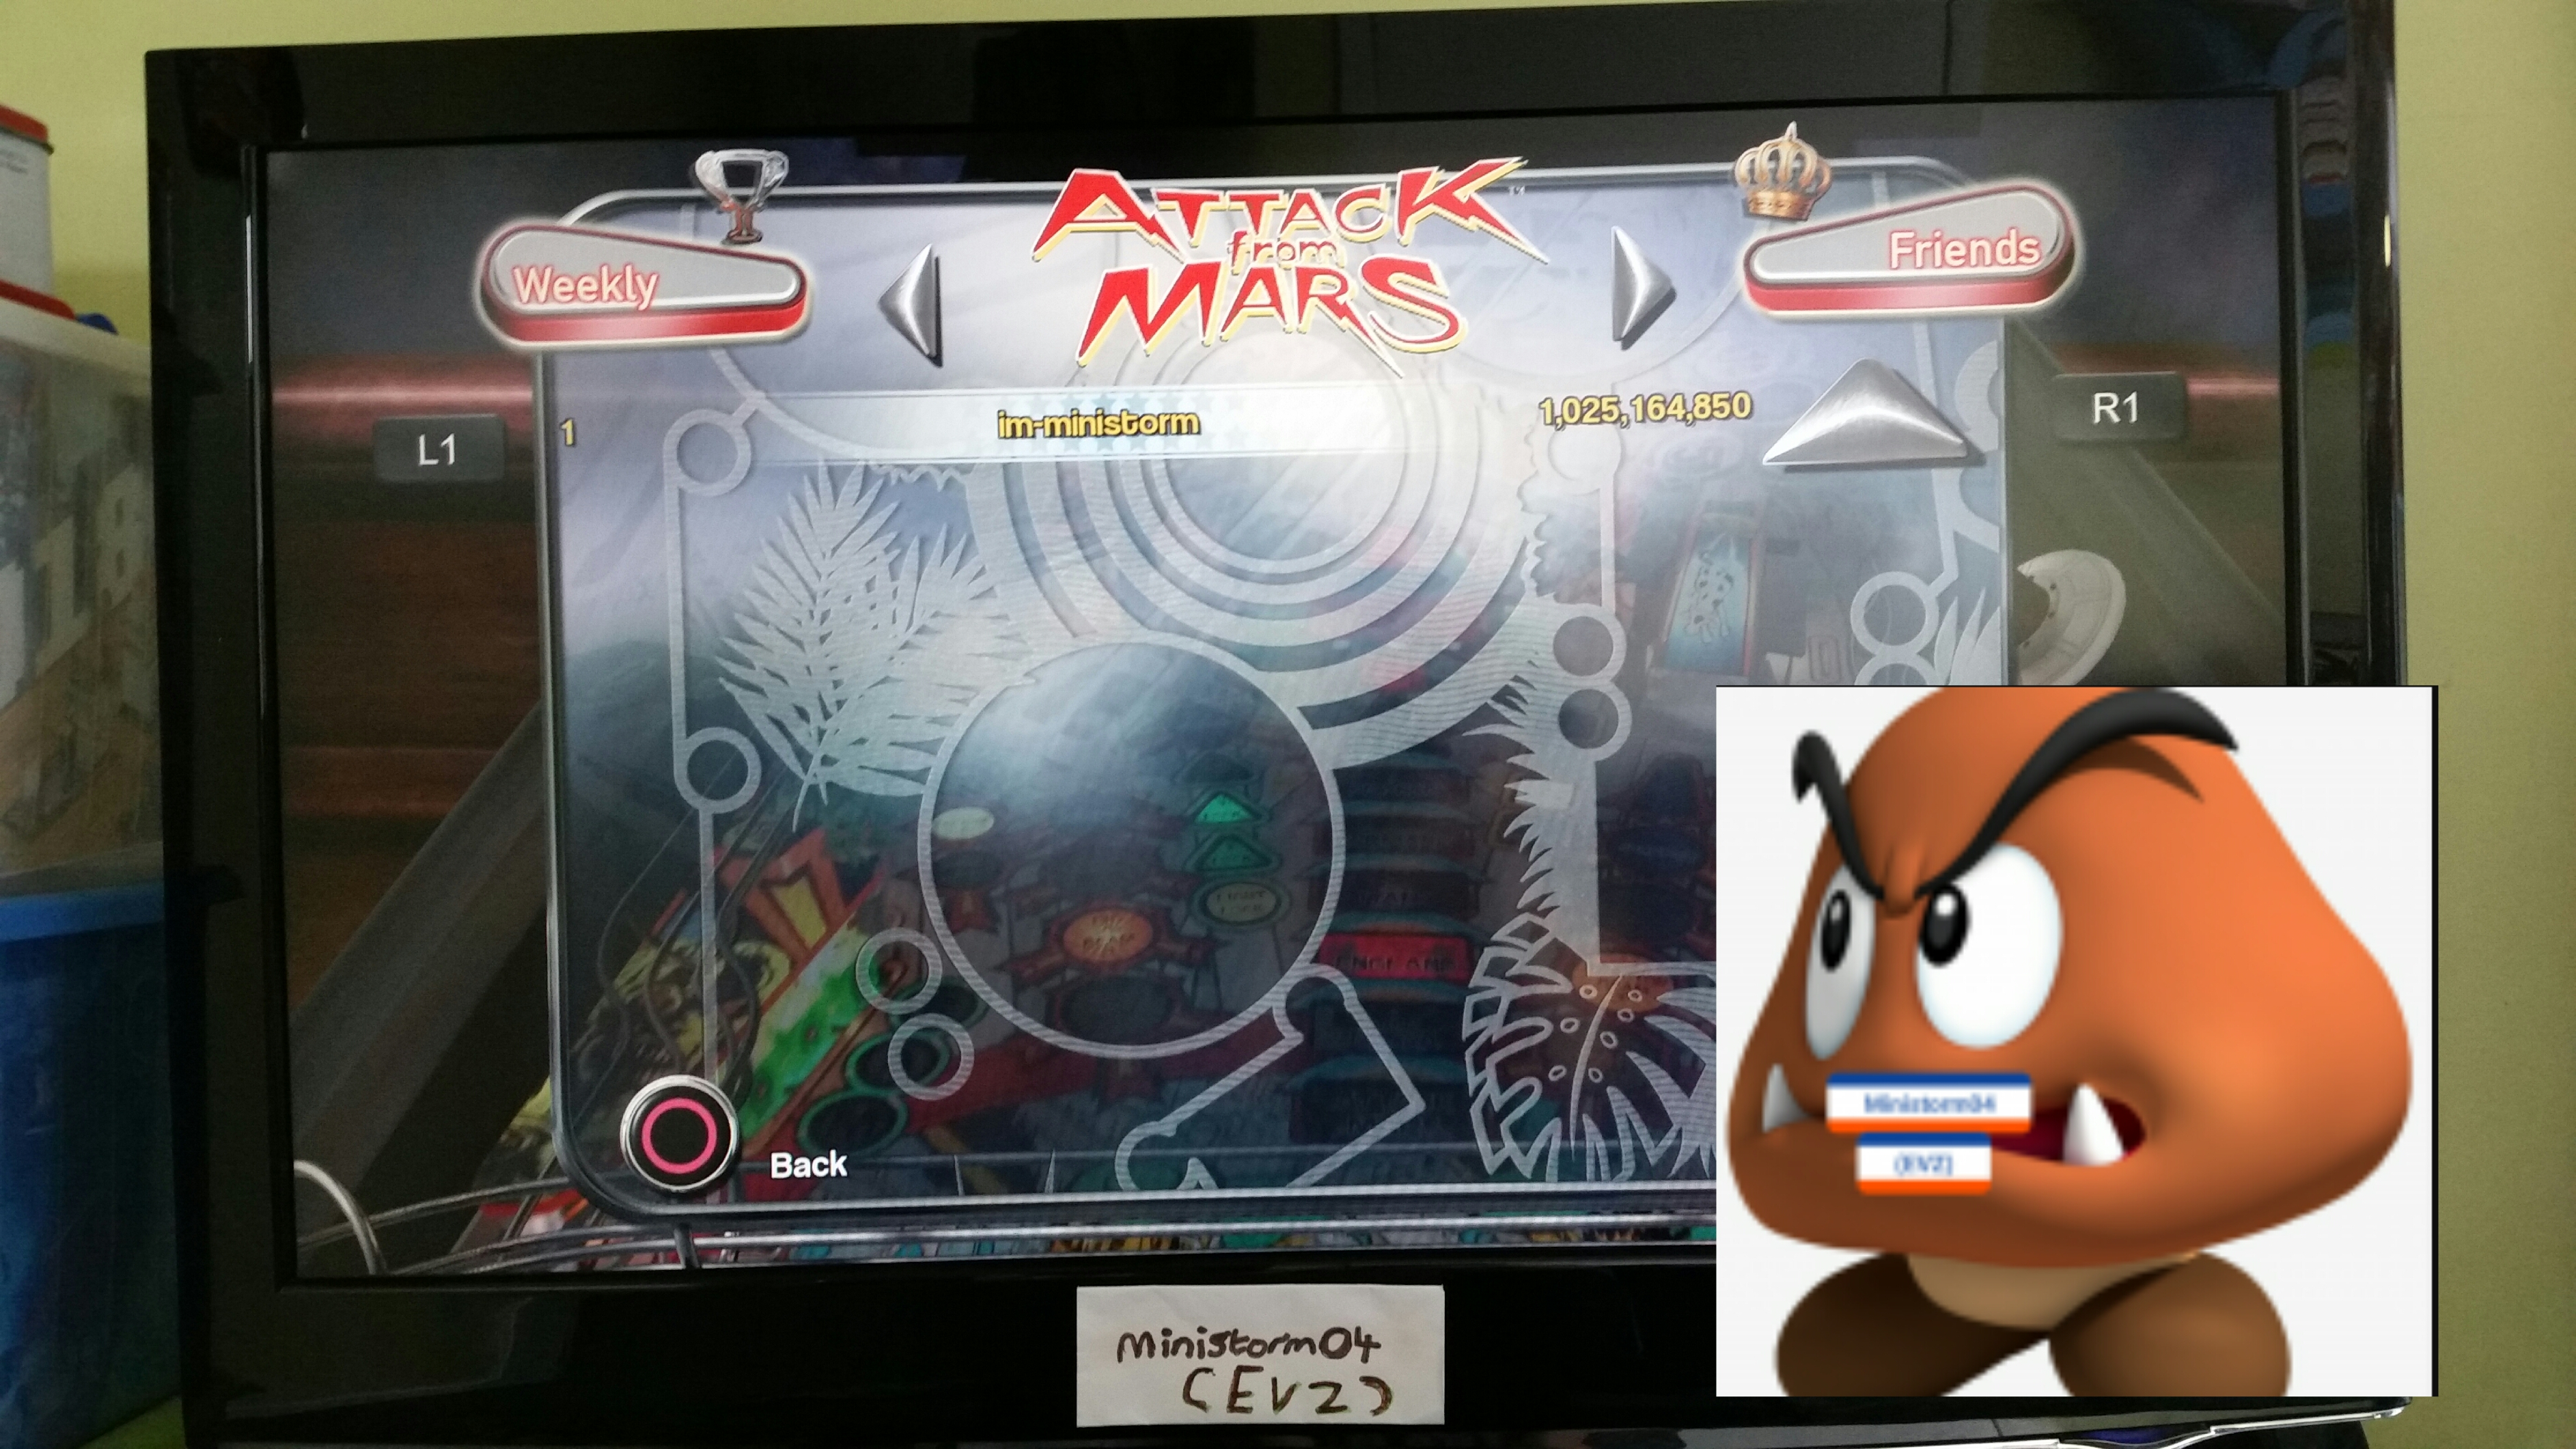 Pinball Arcade: Attack From Mars 1,025,164,850 points